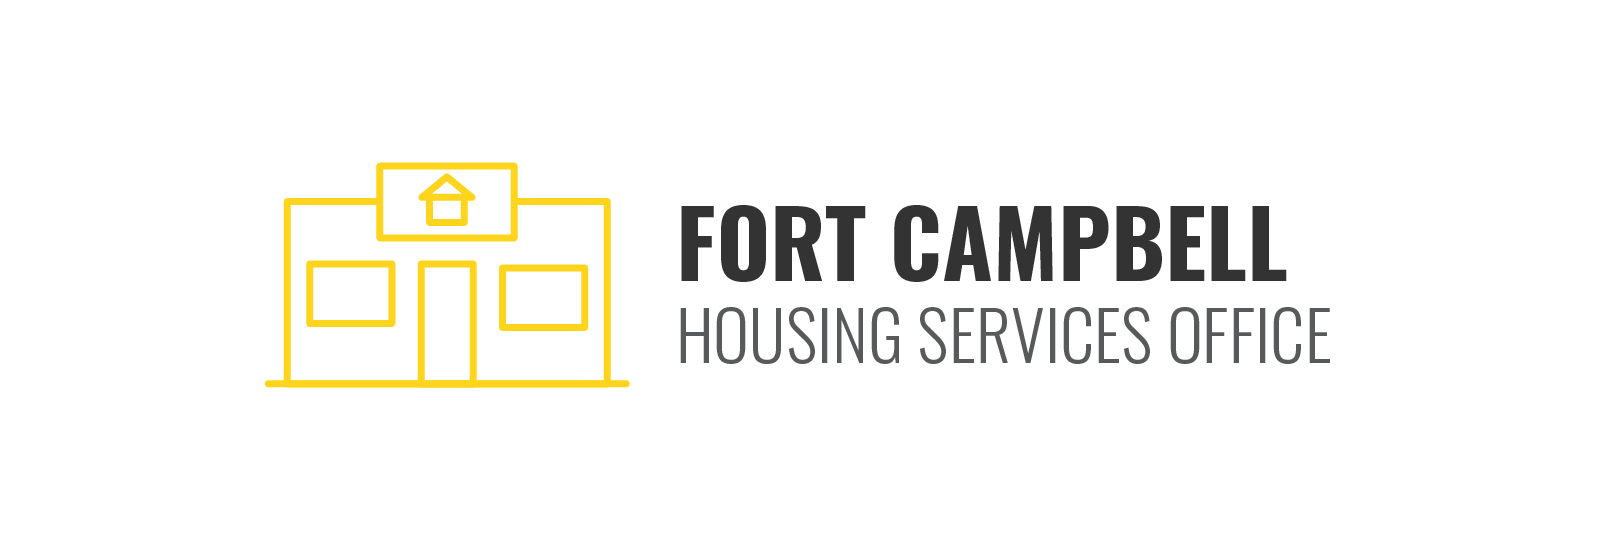 Fort Campbell Housing Office